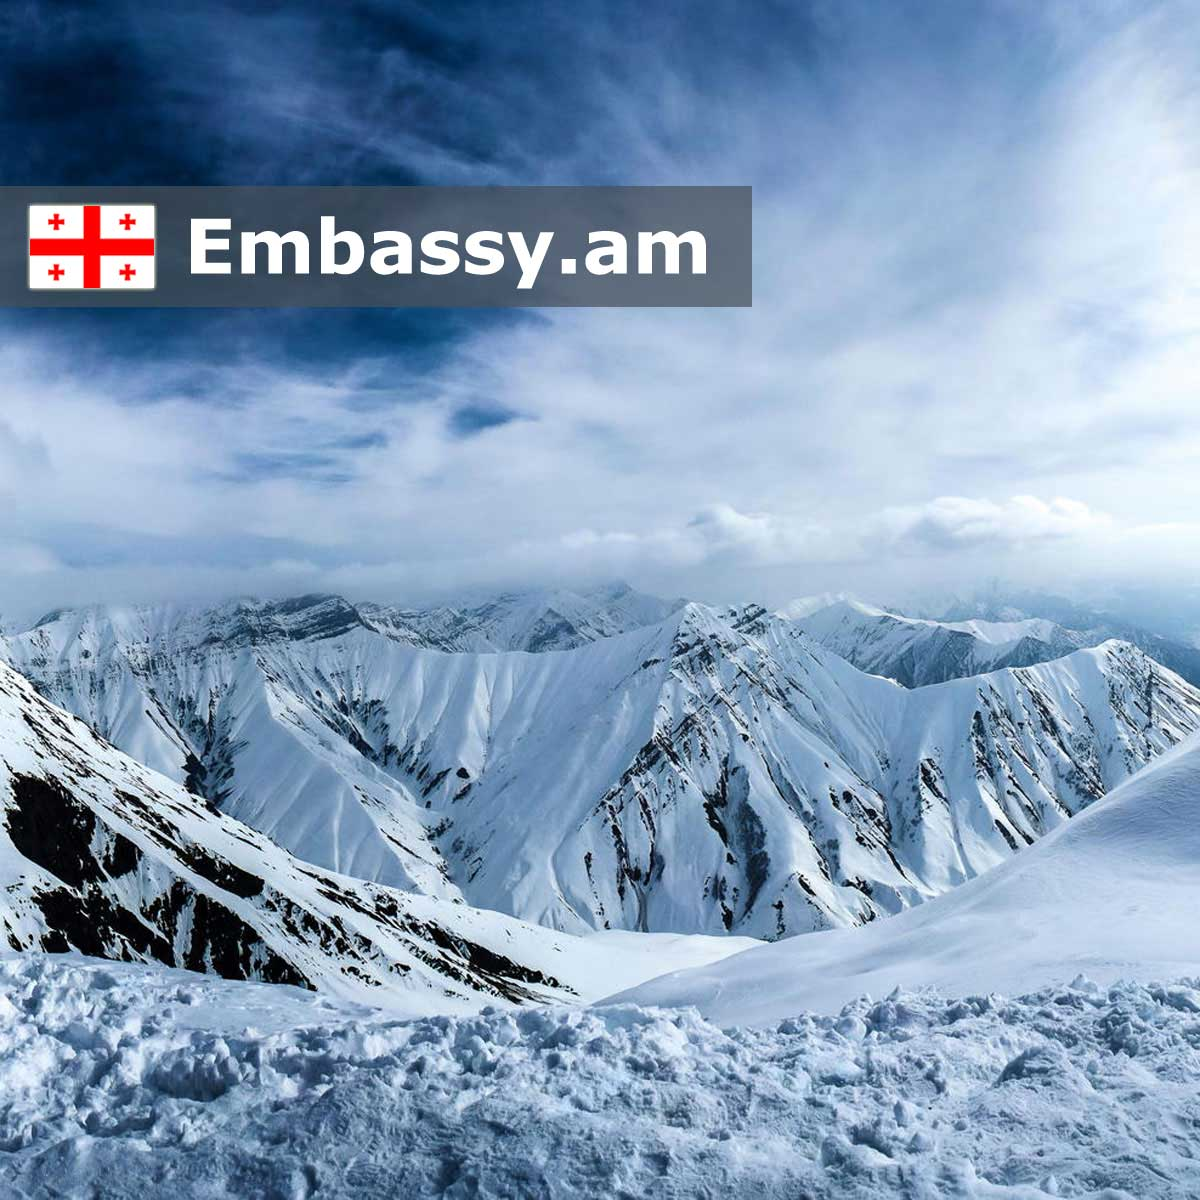 Gudauri - Hotels in Georgia - Embassy.am